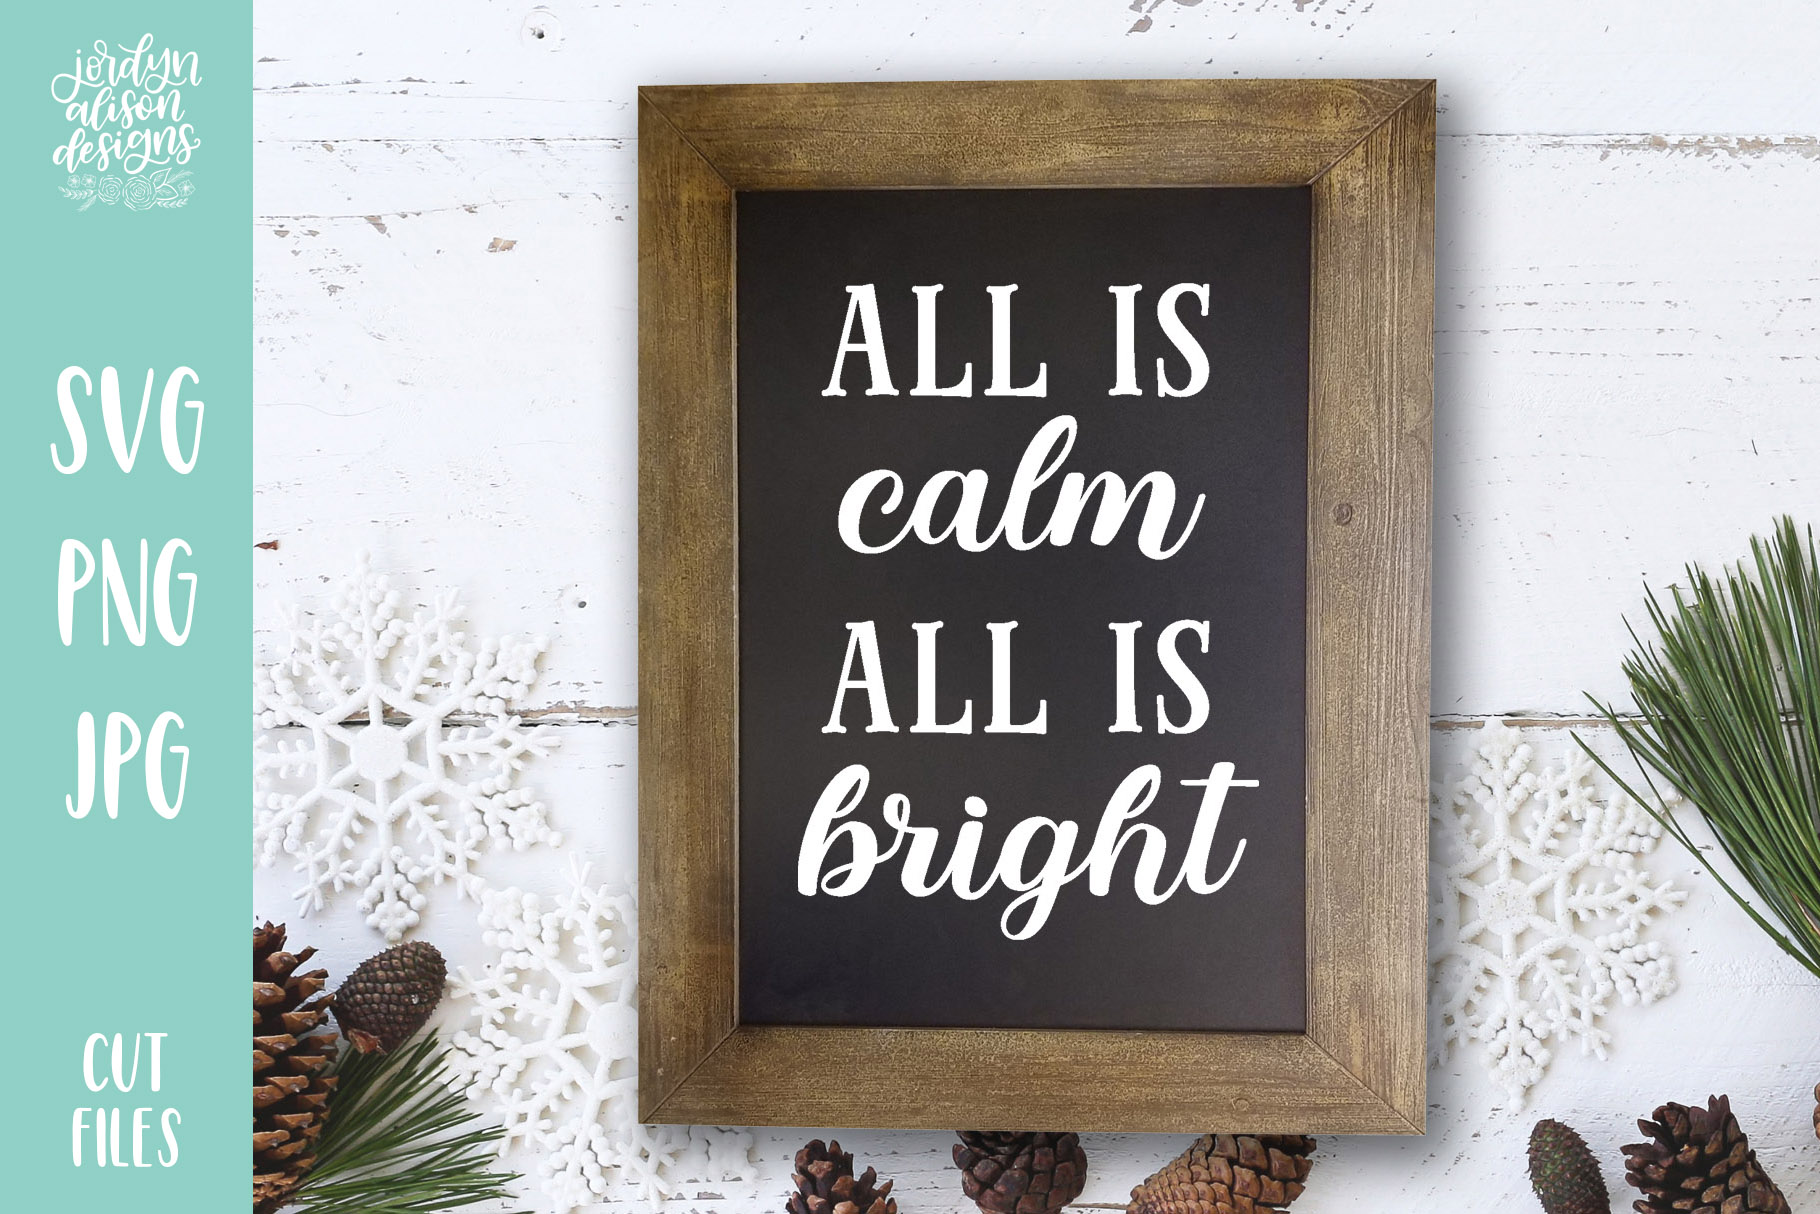 All Is Calm All Is Bright, Christmas Holiday SVG Cut File example image 1